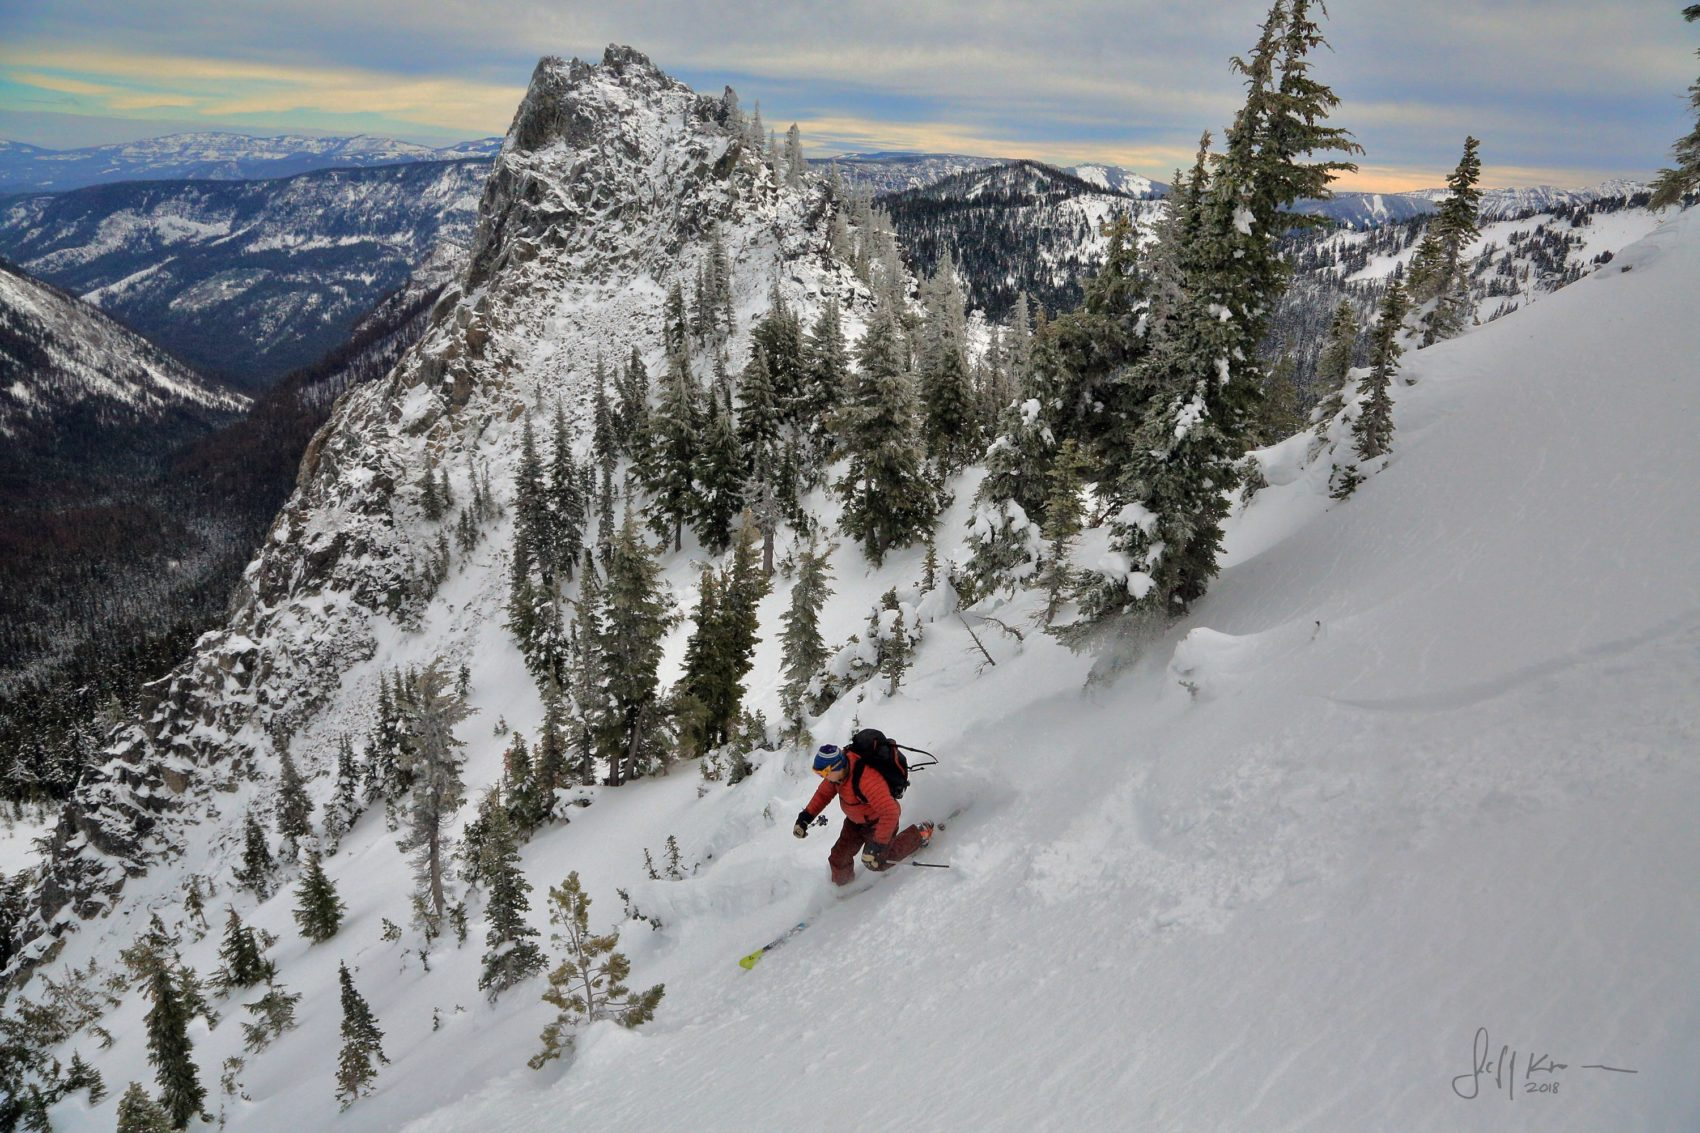 conditions report white pass, wa: fresh tracks all weekend - stoke